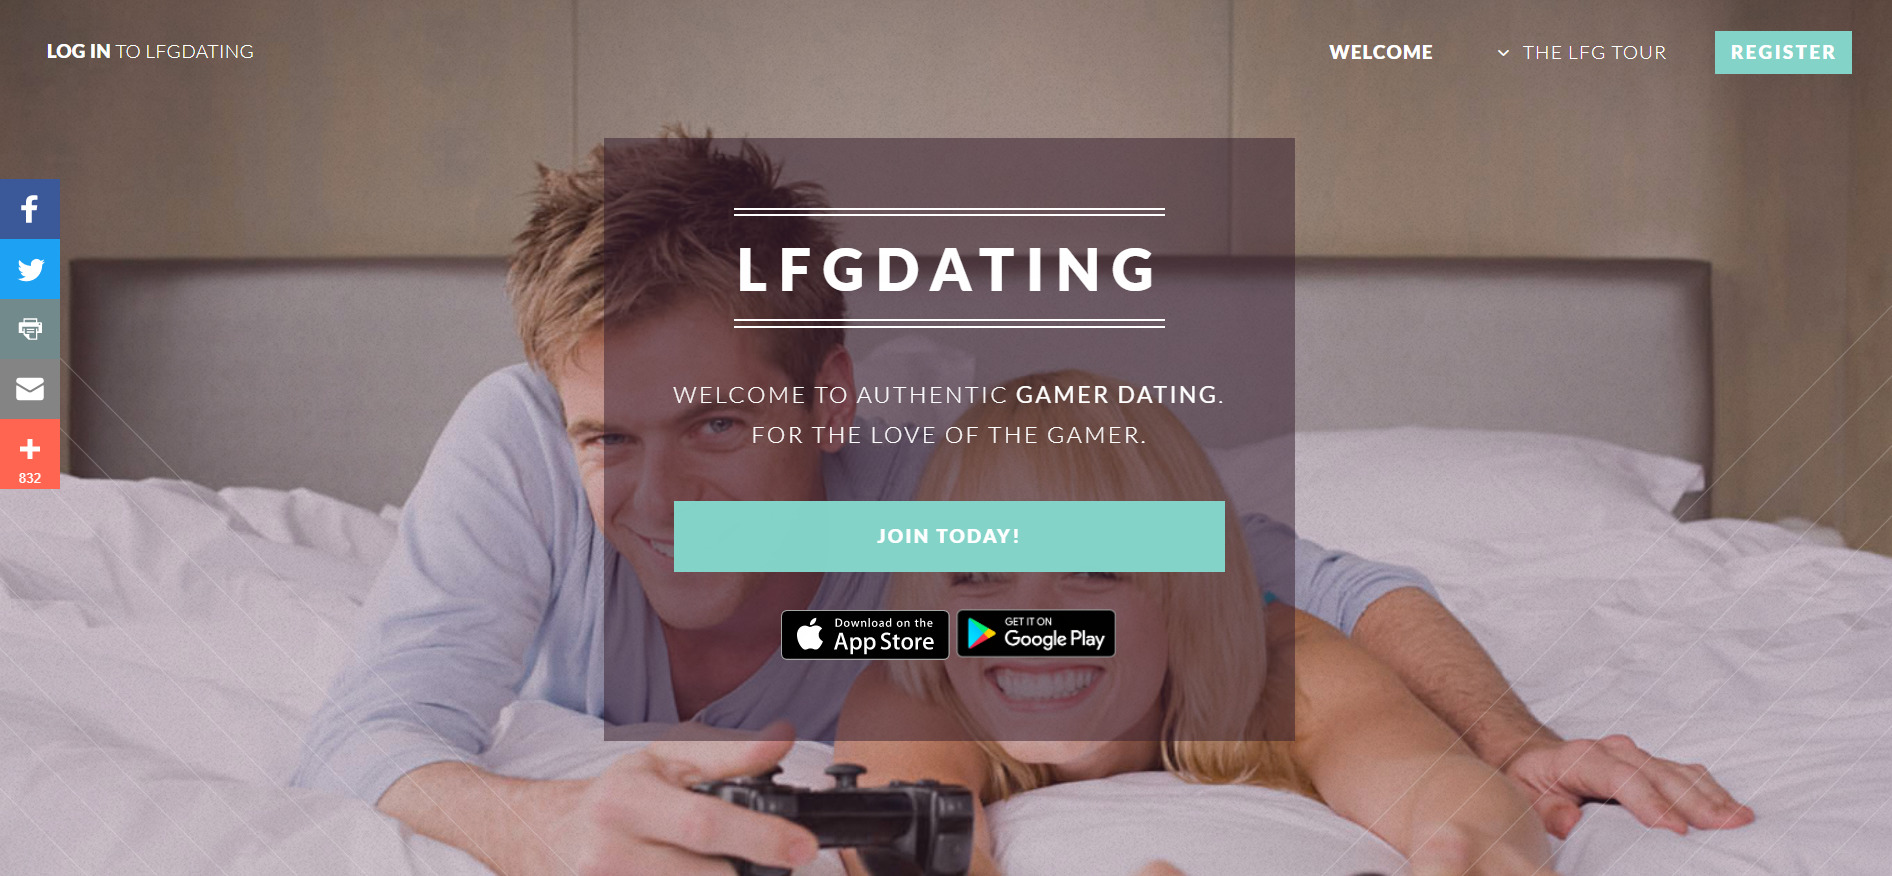 2021 03 07 7 - Top 7 dating apps and websites for geeks and gamers